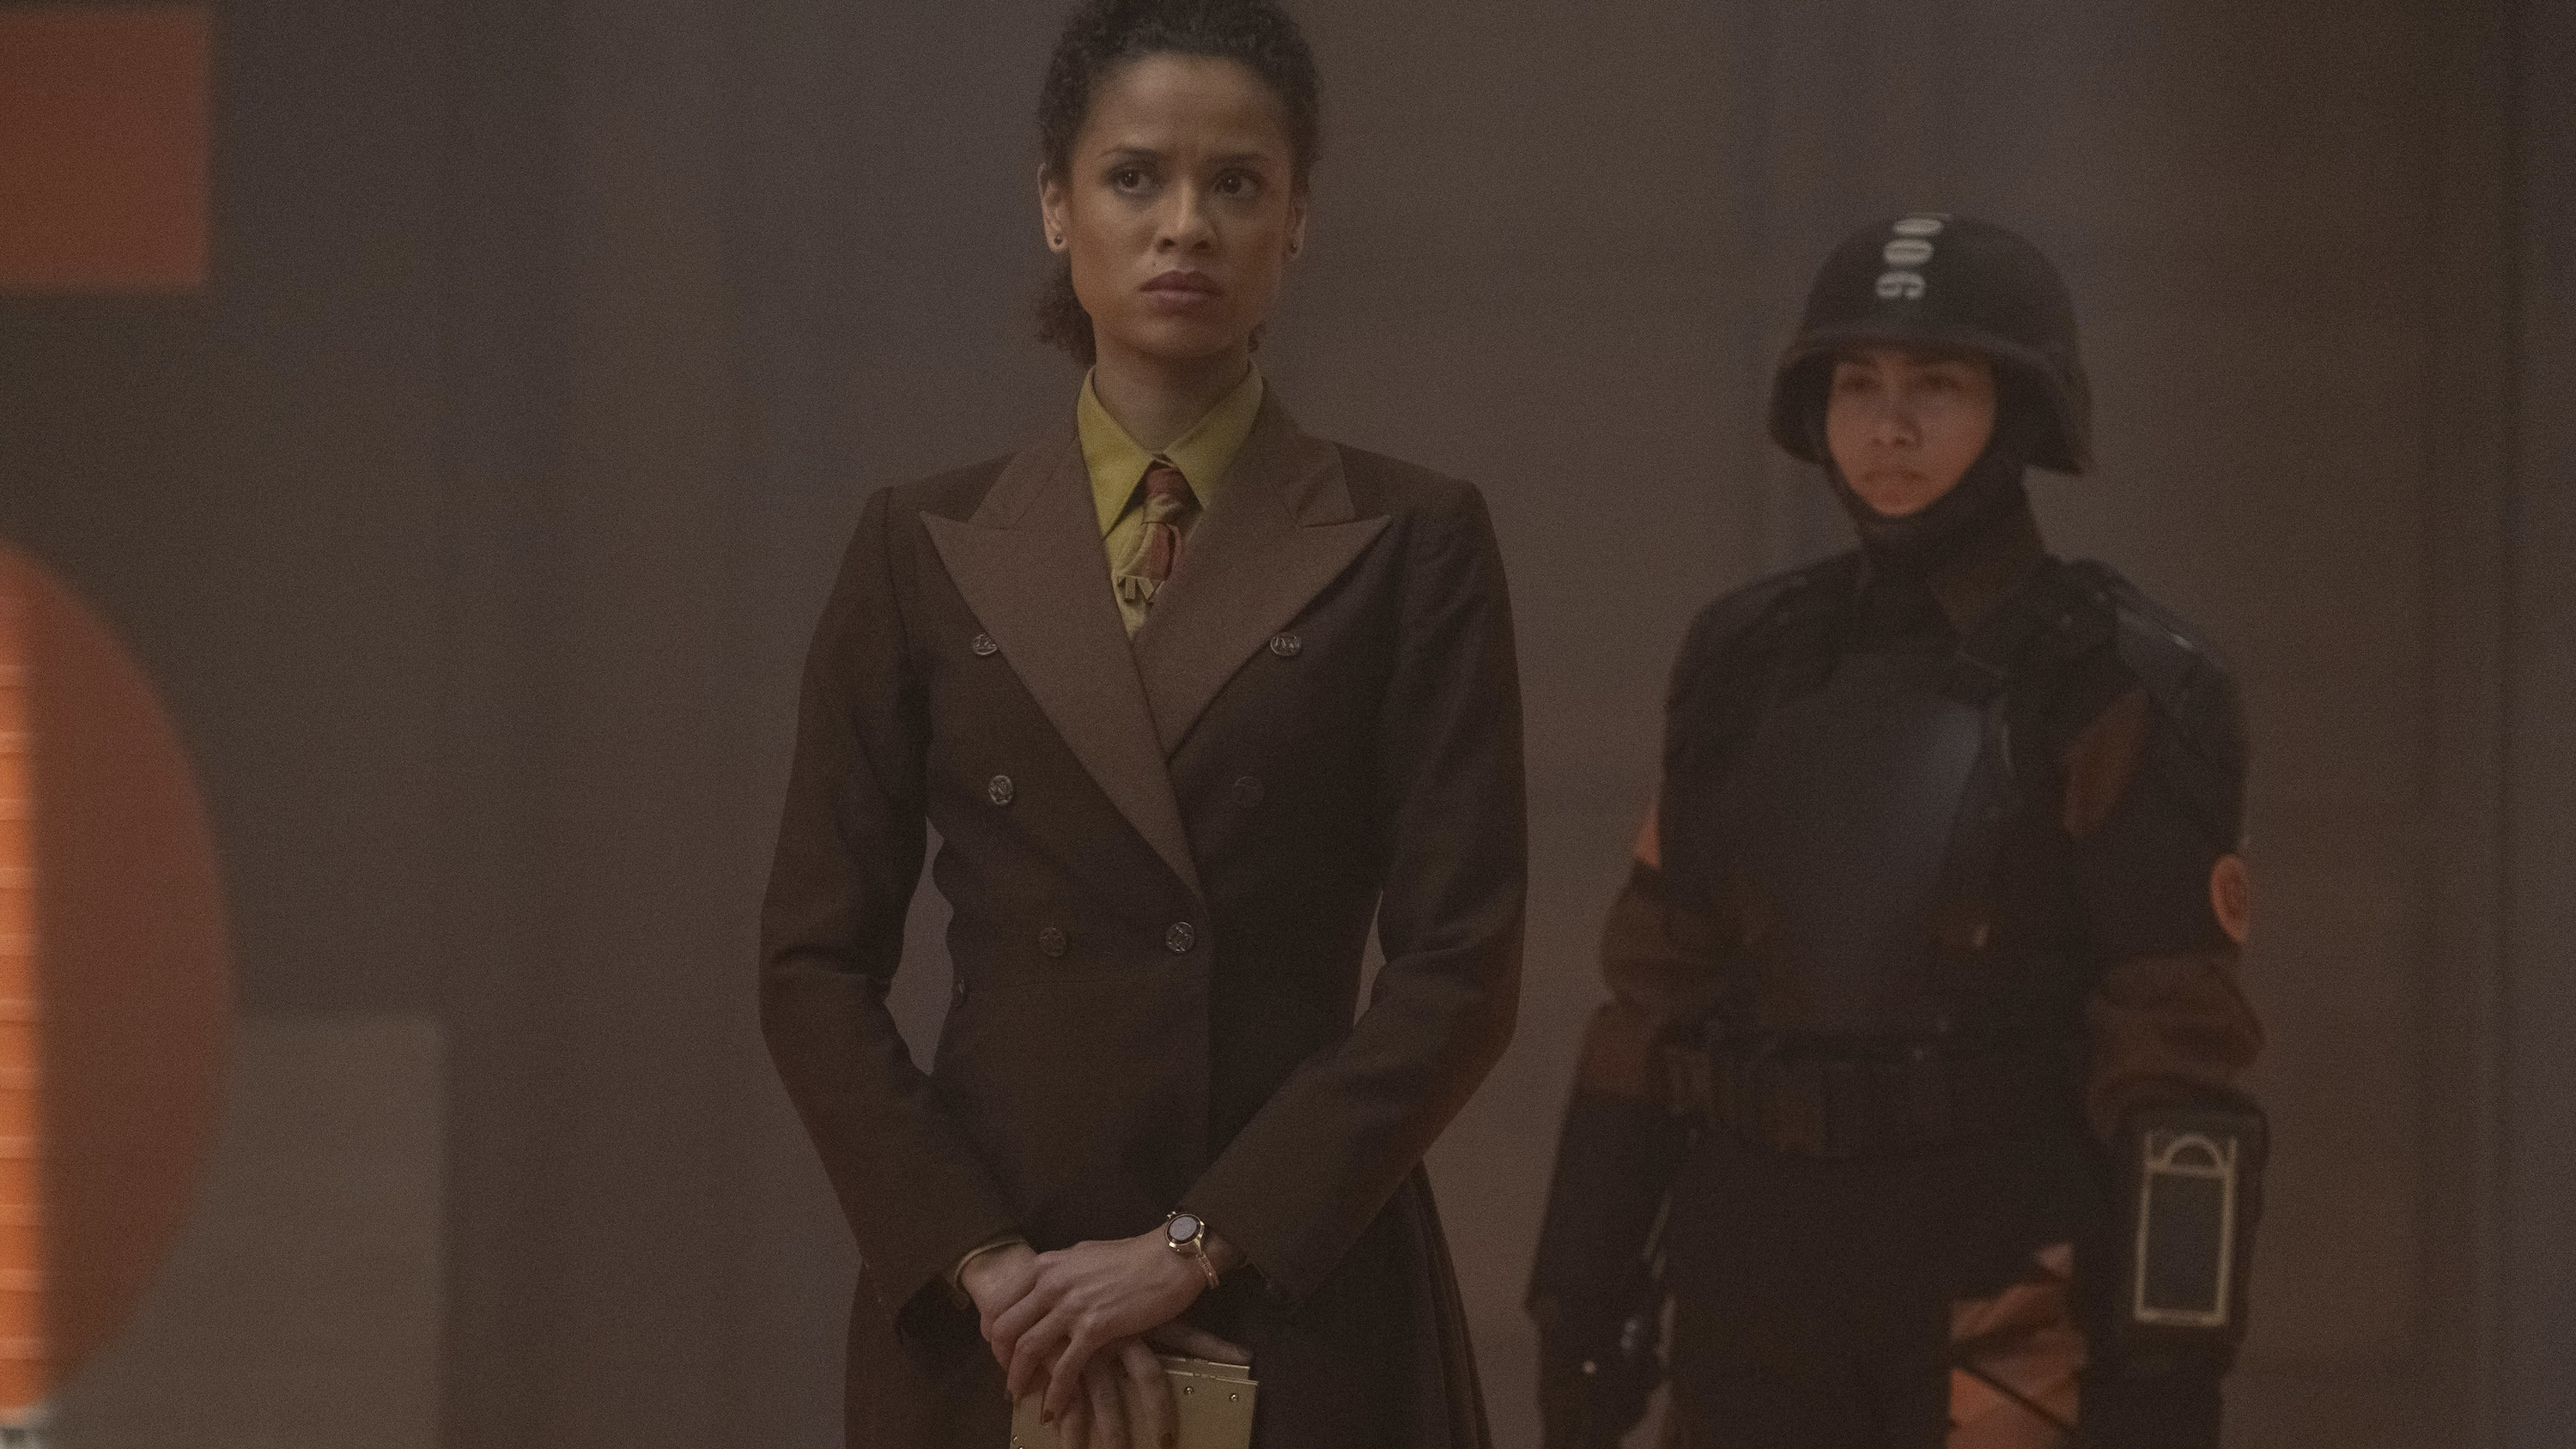 (L): Judge Renslayer (Gugu Mbatha-Raw) in Marvel Studios' LOKI, exclusively on Disney+. Photo by Chuck Zlotnick. ©Marvel Studios 2021. All Rights Reserved.